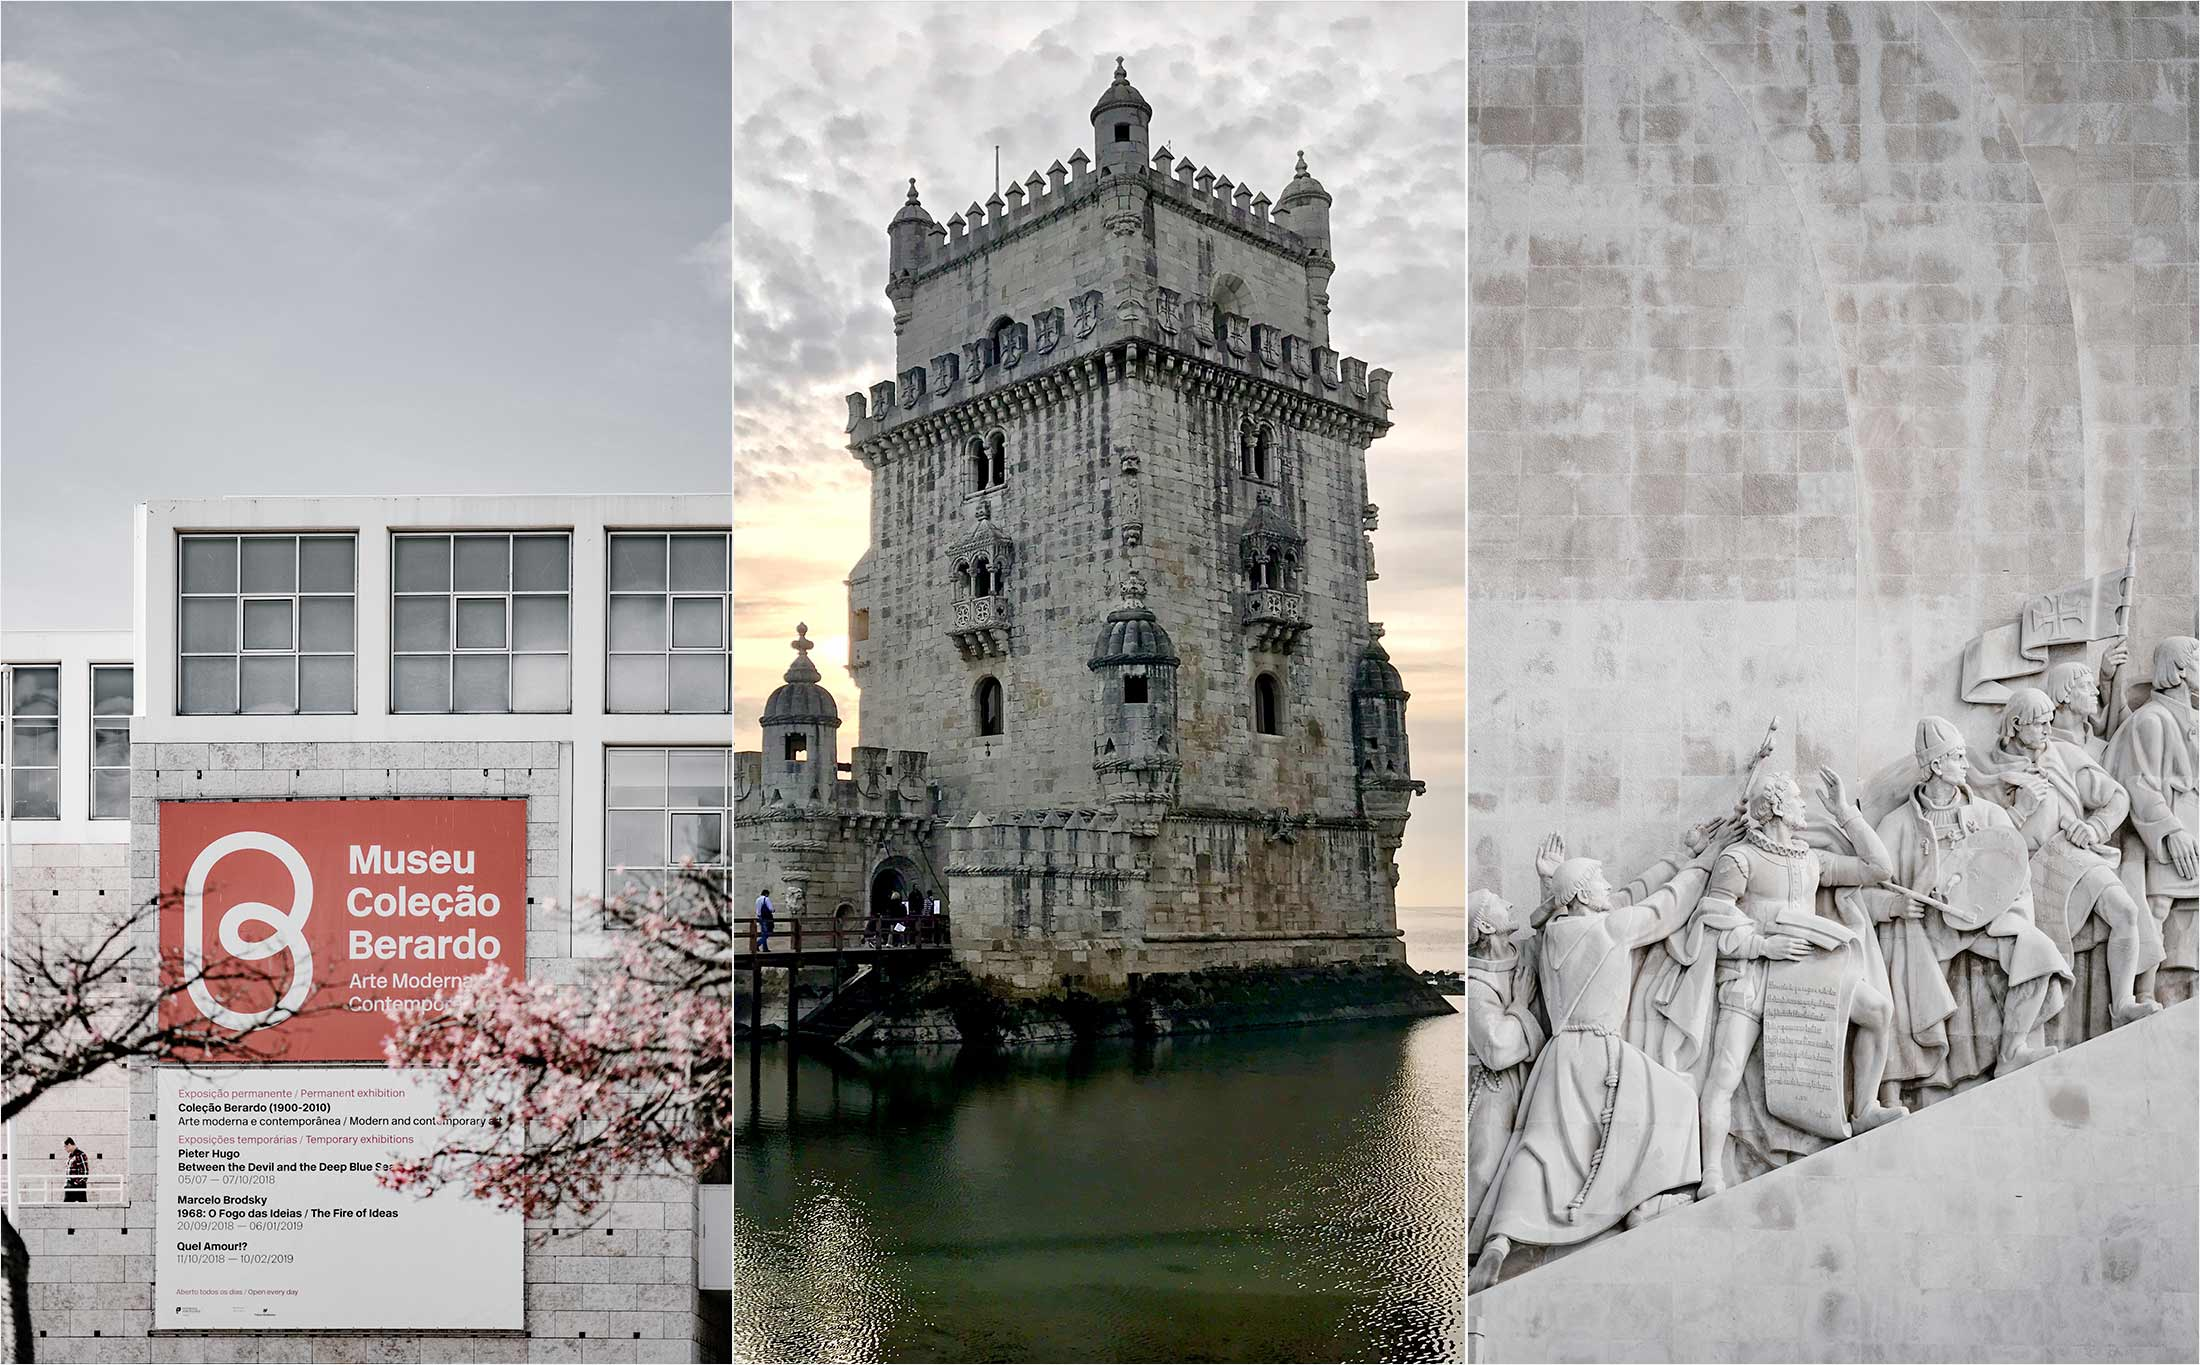 Itinerary through Belém: Where mornings have a special charm